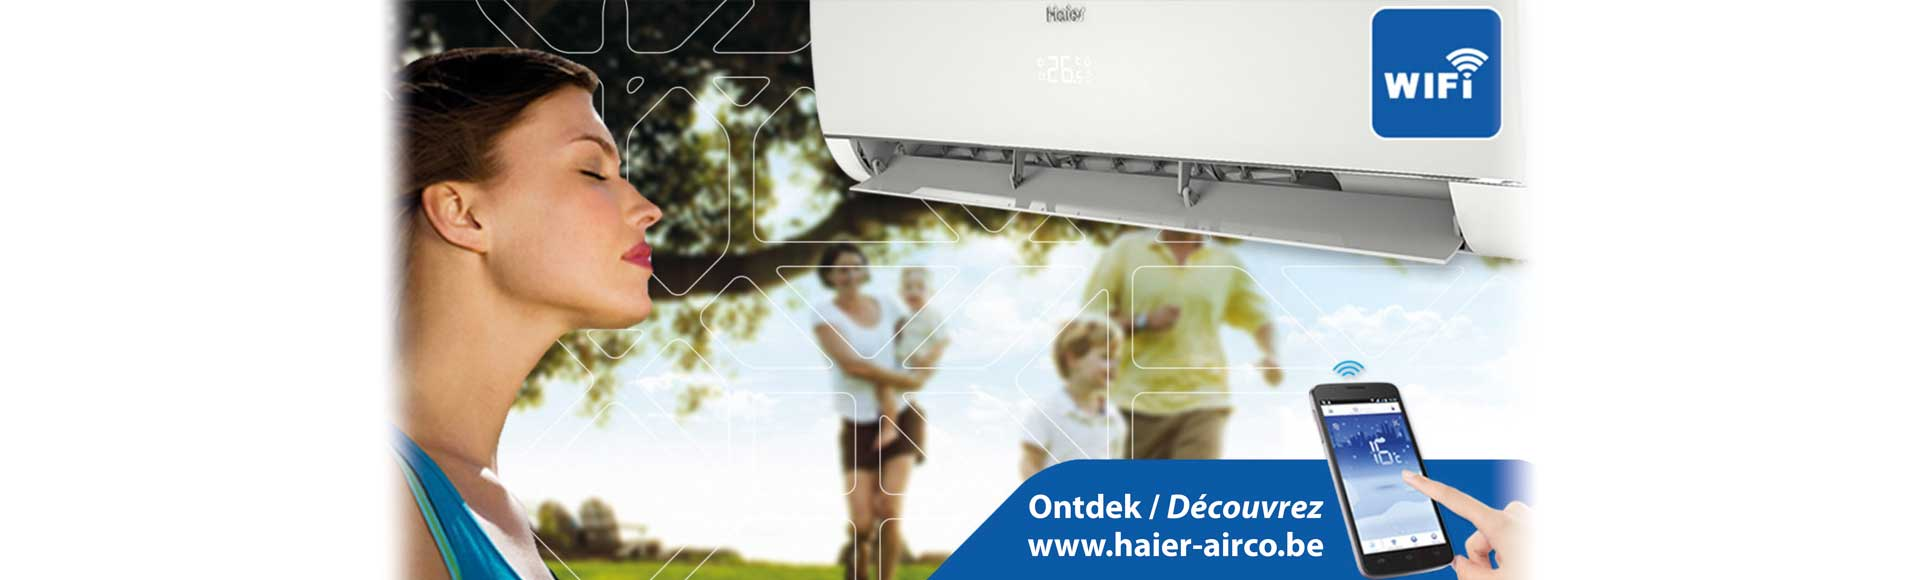 Airconditioning Haier